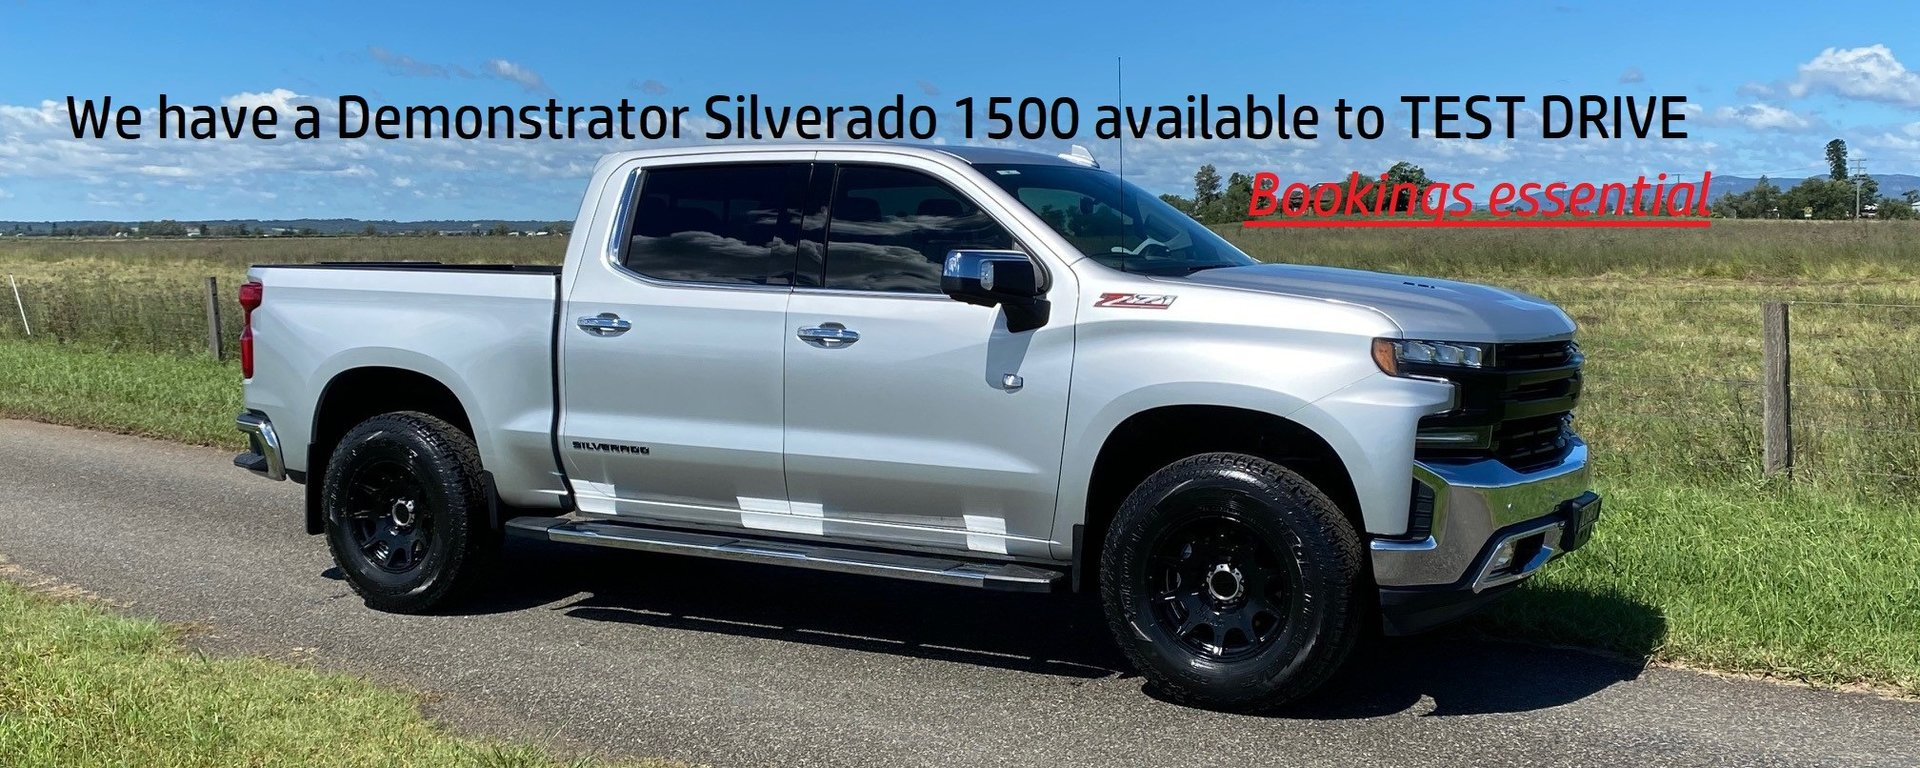 We have a Silverado 1500 to Test Drive